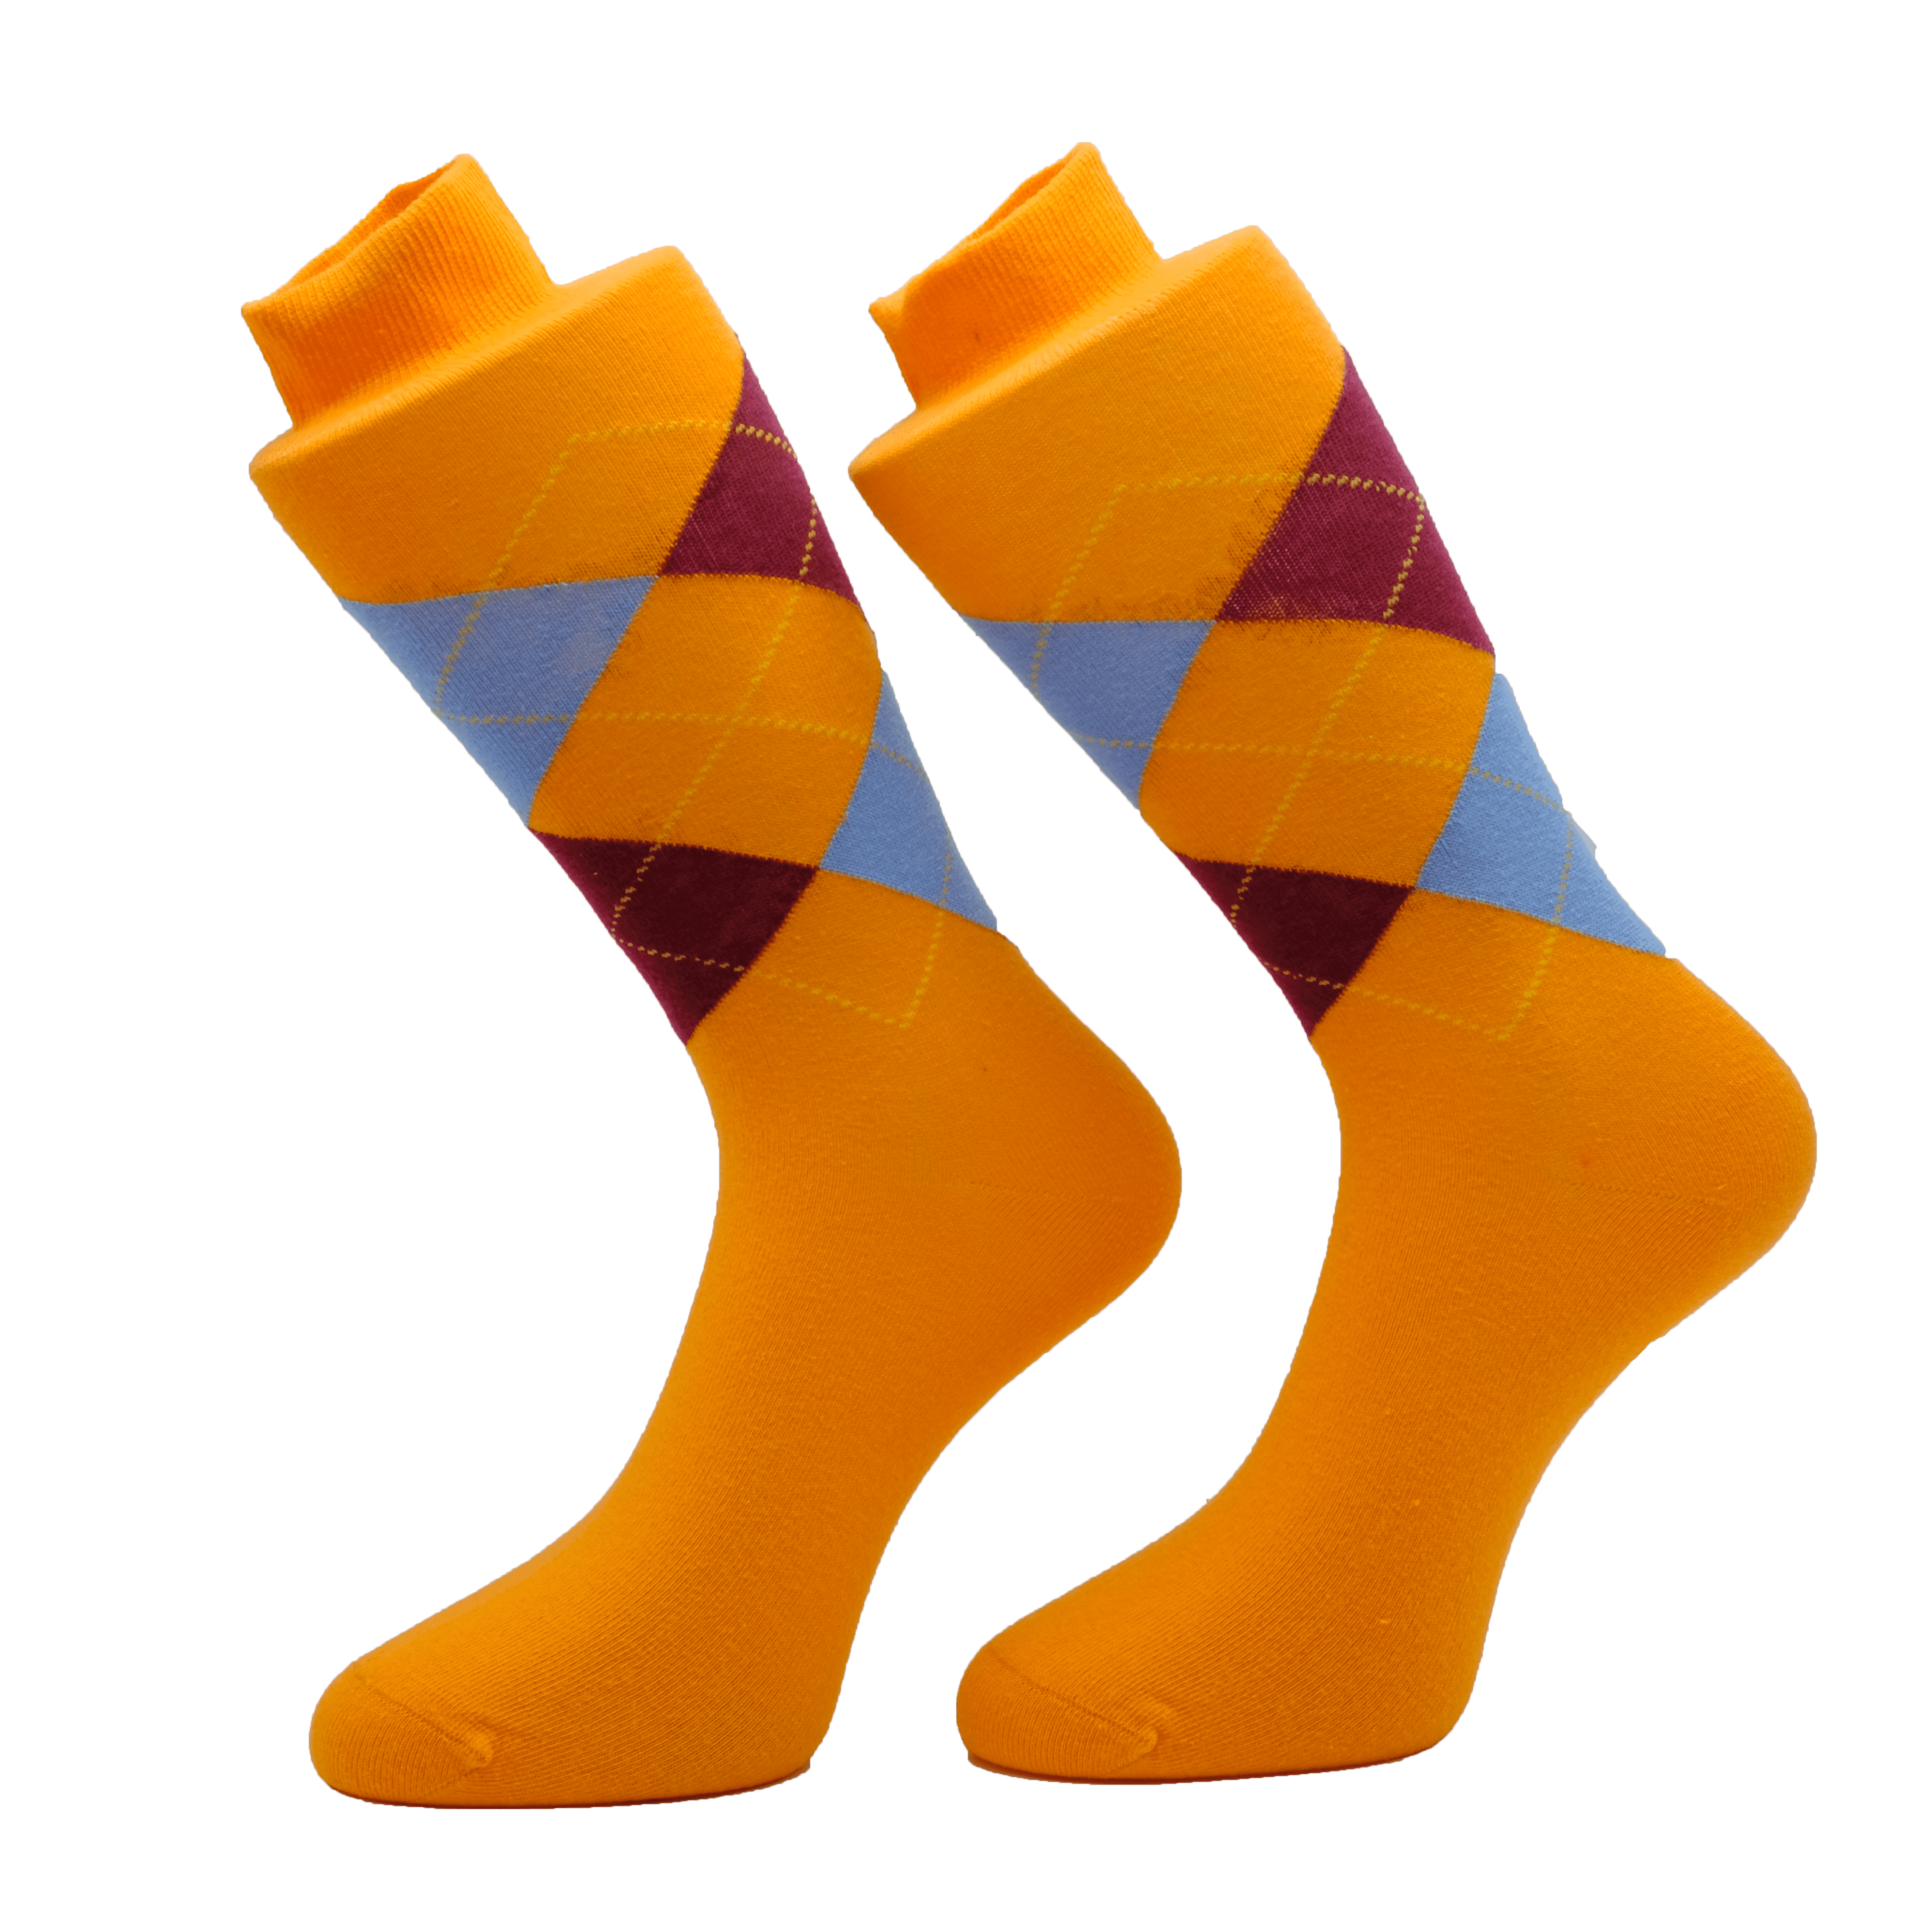 Design your own Business socks with logo